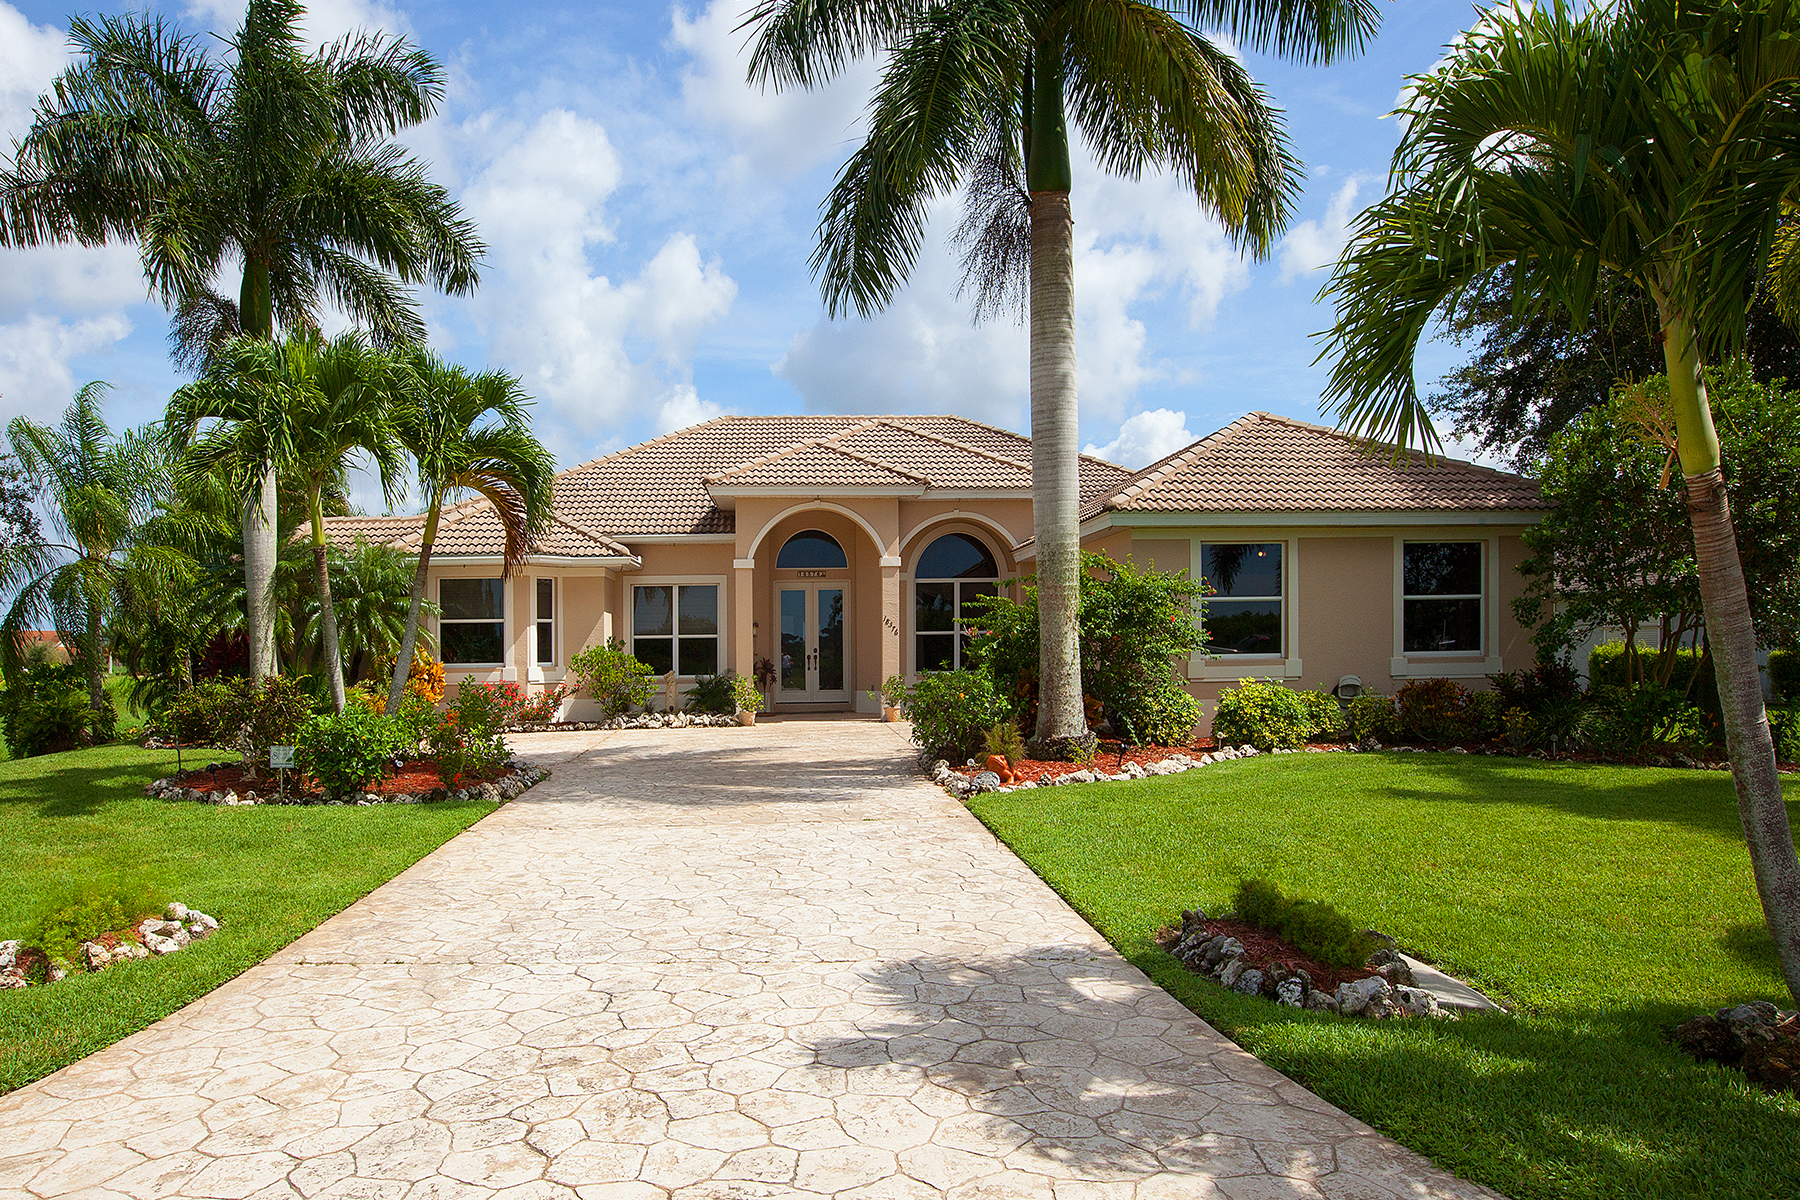 Single Family Home for Sale at NAPLES - ROYAL PALM GOLF ESTATES 18576 Royal Hammock Blvd Naples, Florida 34114 United States